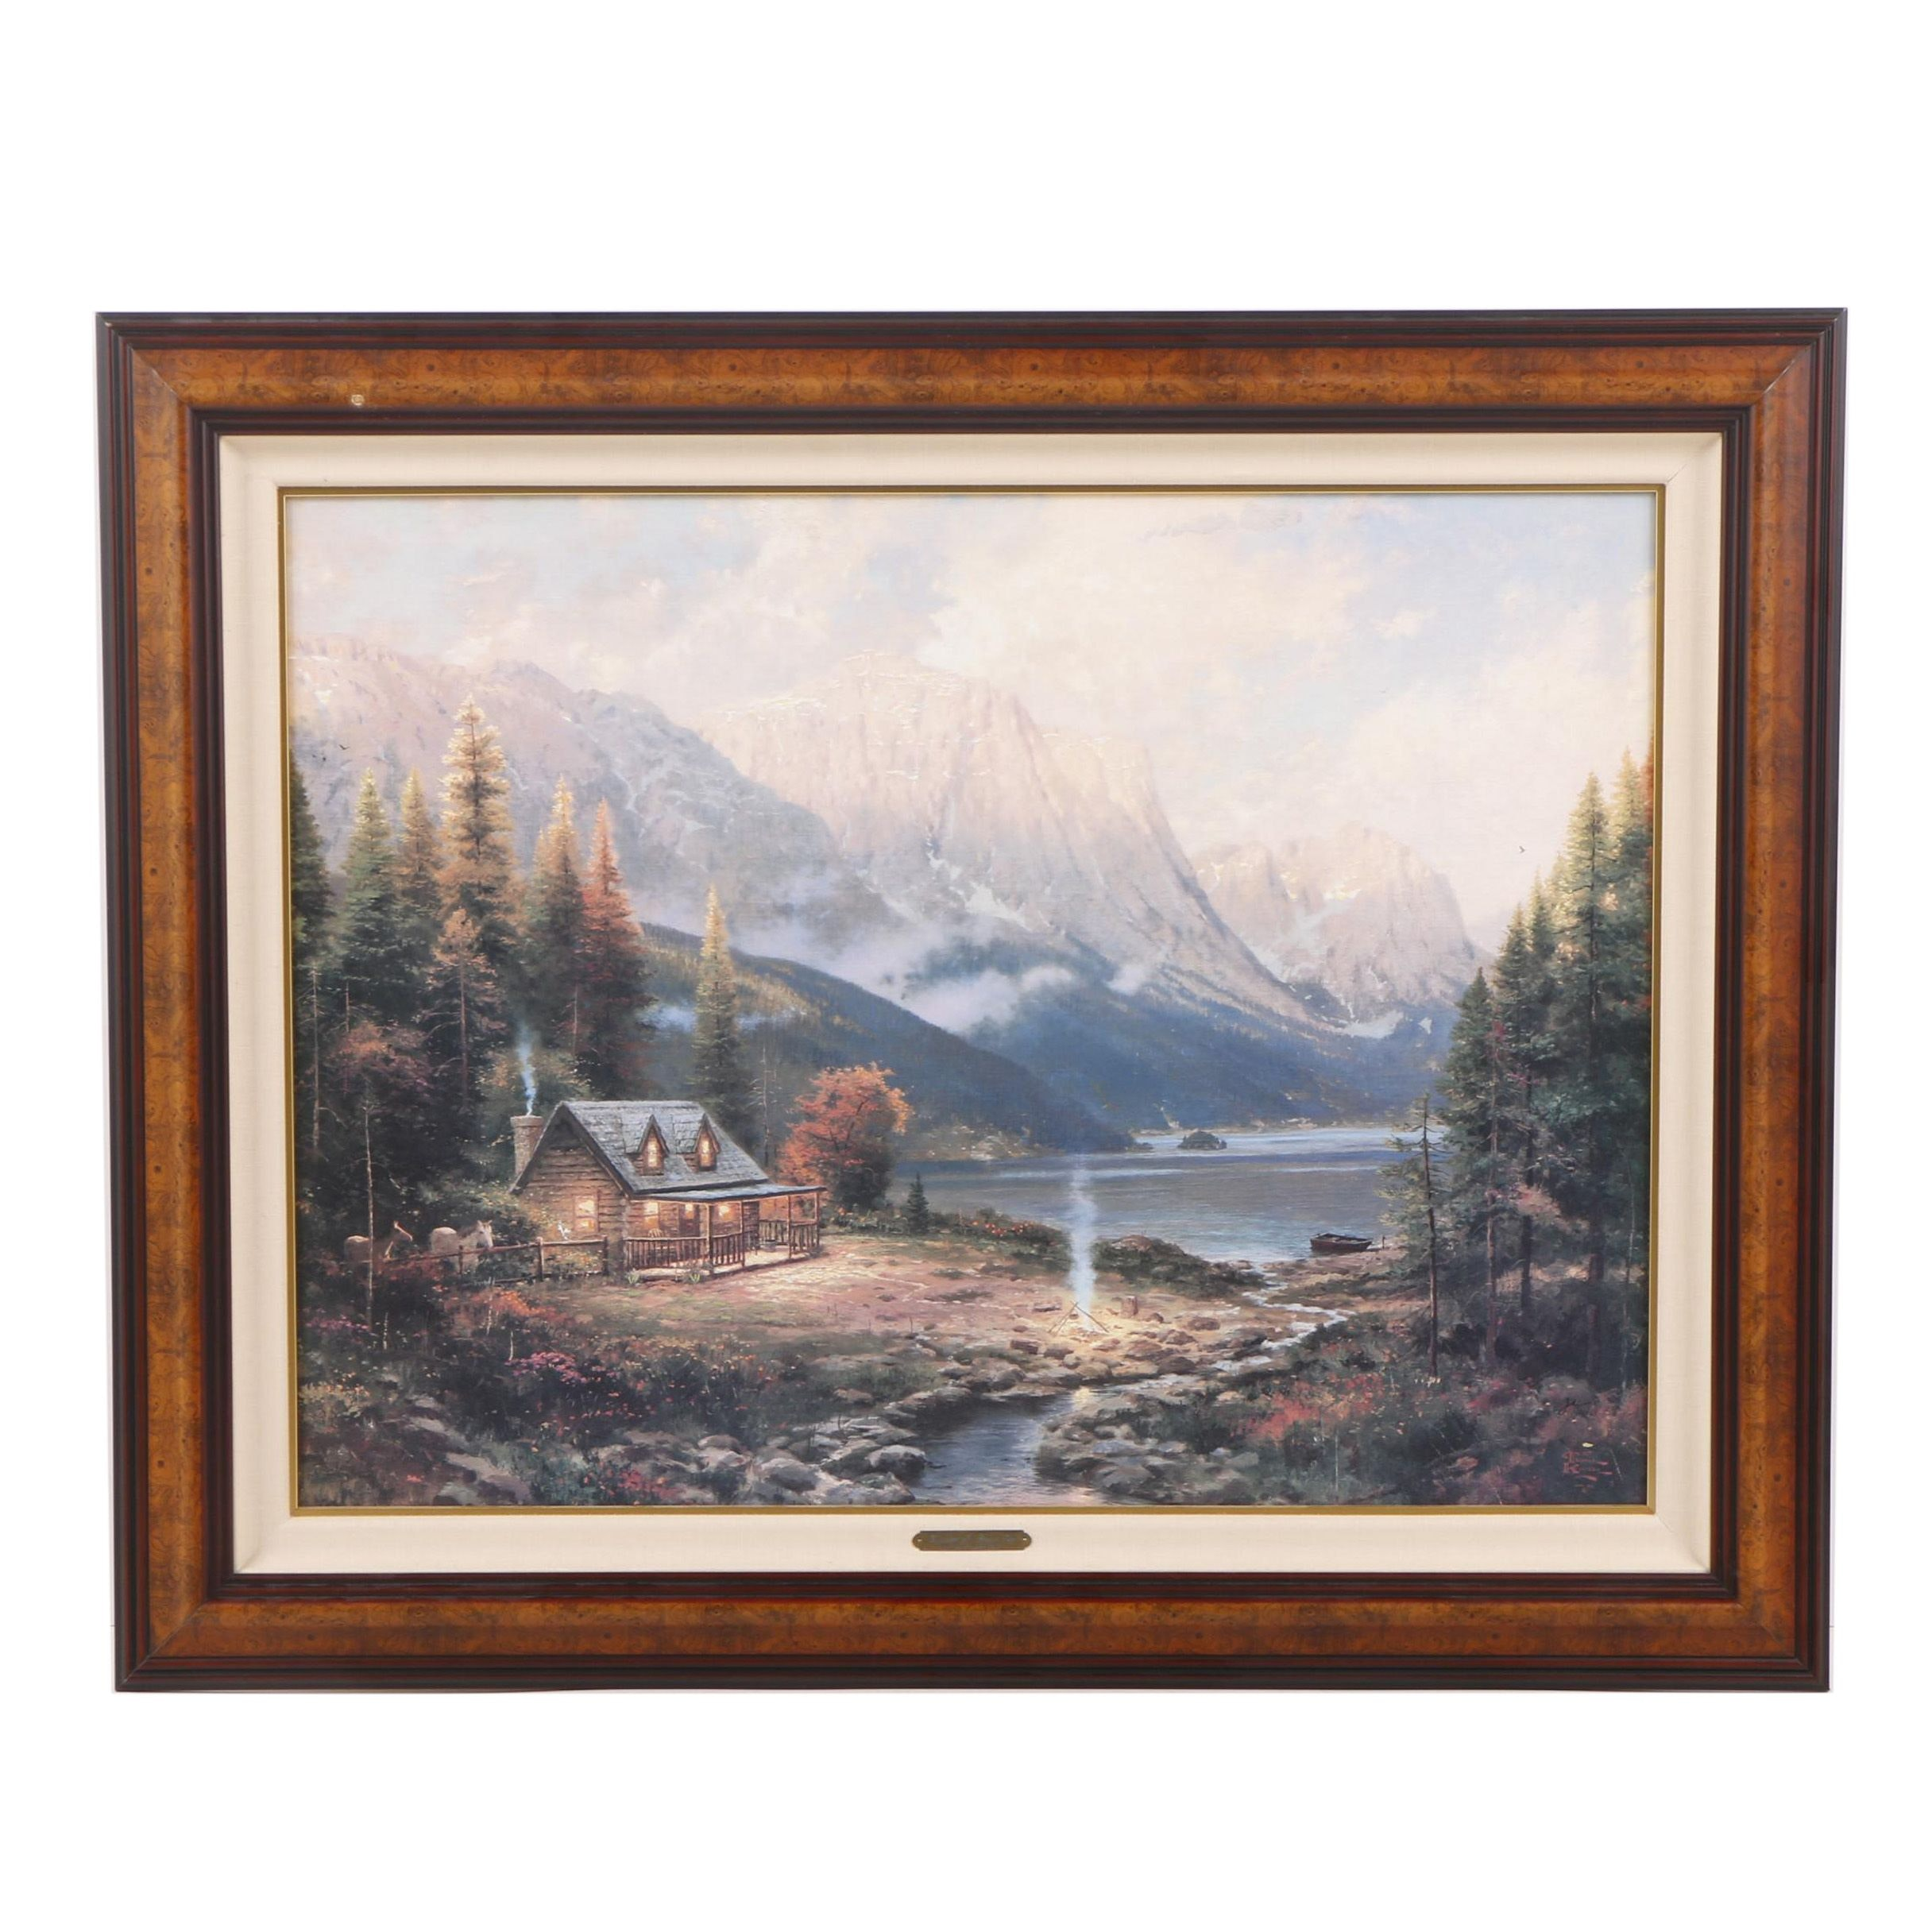 "Offset Lithograph After Thomas Kinkade's Painting ""Beginning of a Perfect Day"""